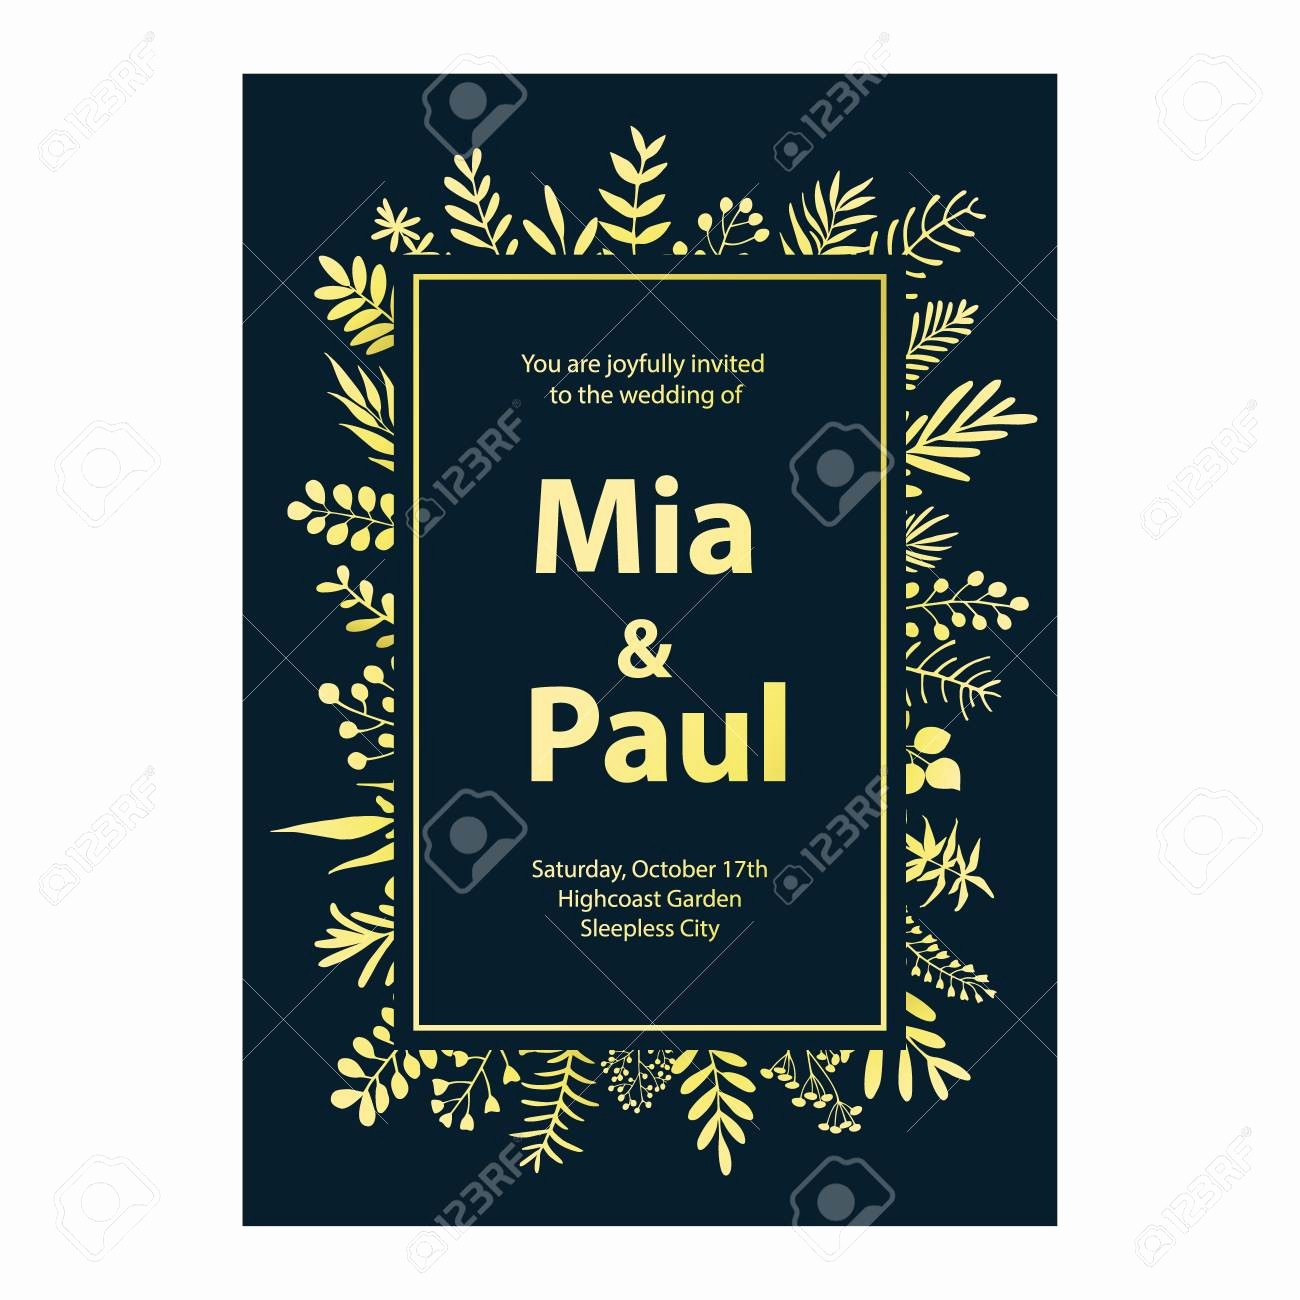 Blue and Gold Invitation Template Awesome Bcabebfbabffdcef Reference Free Blue and Gold